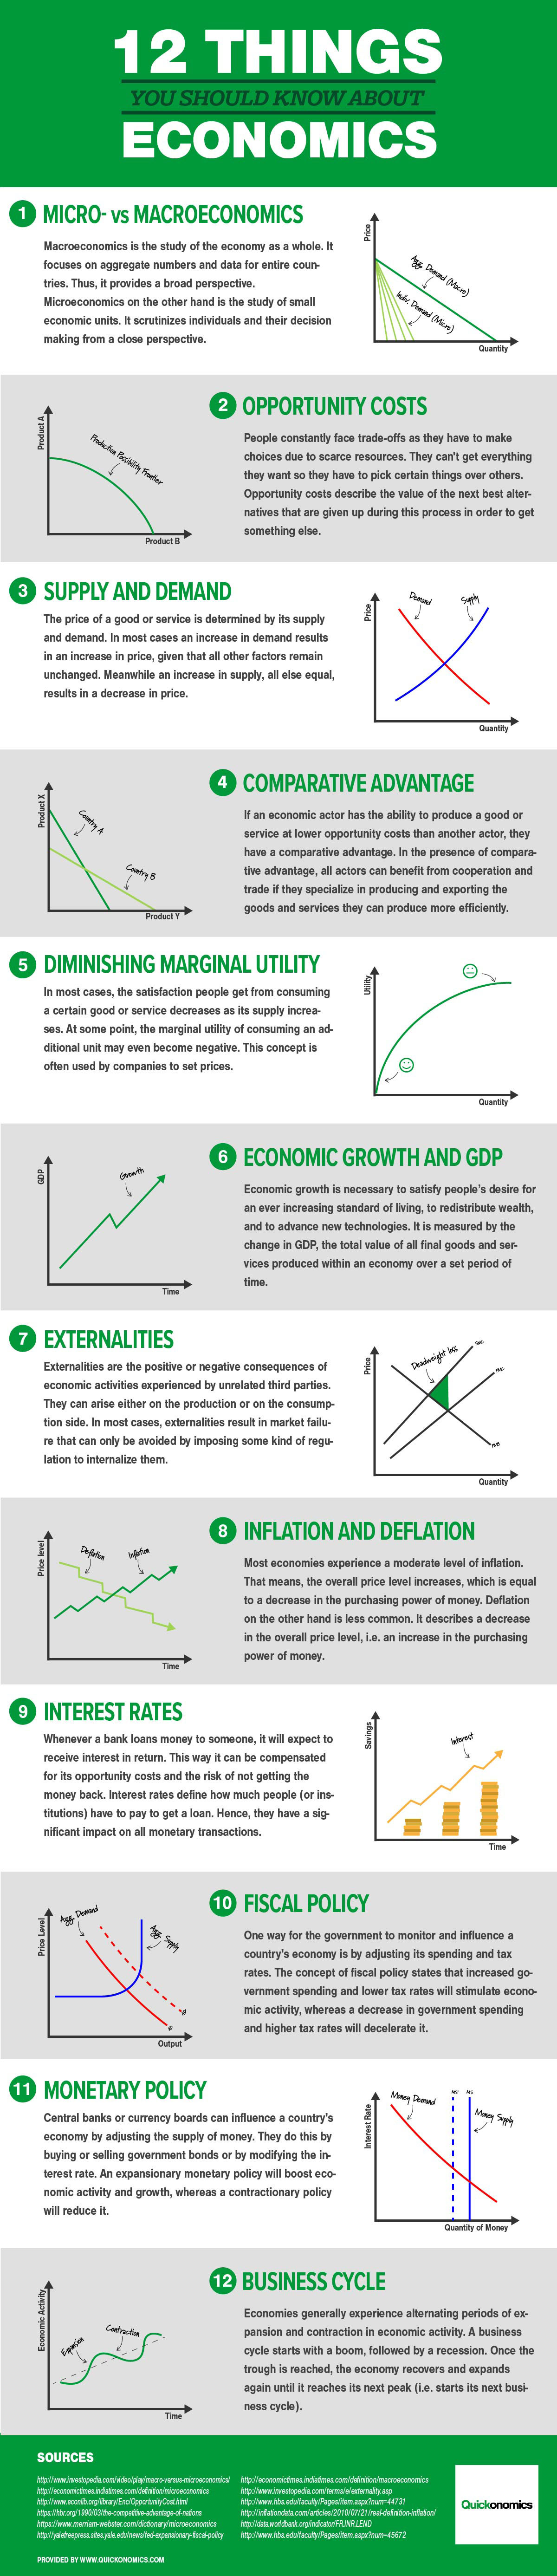 Infographic - 12 Things you should know about economics